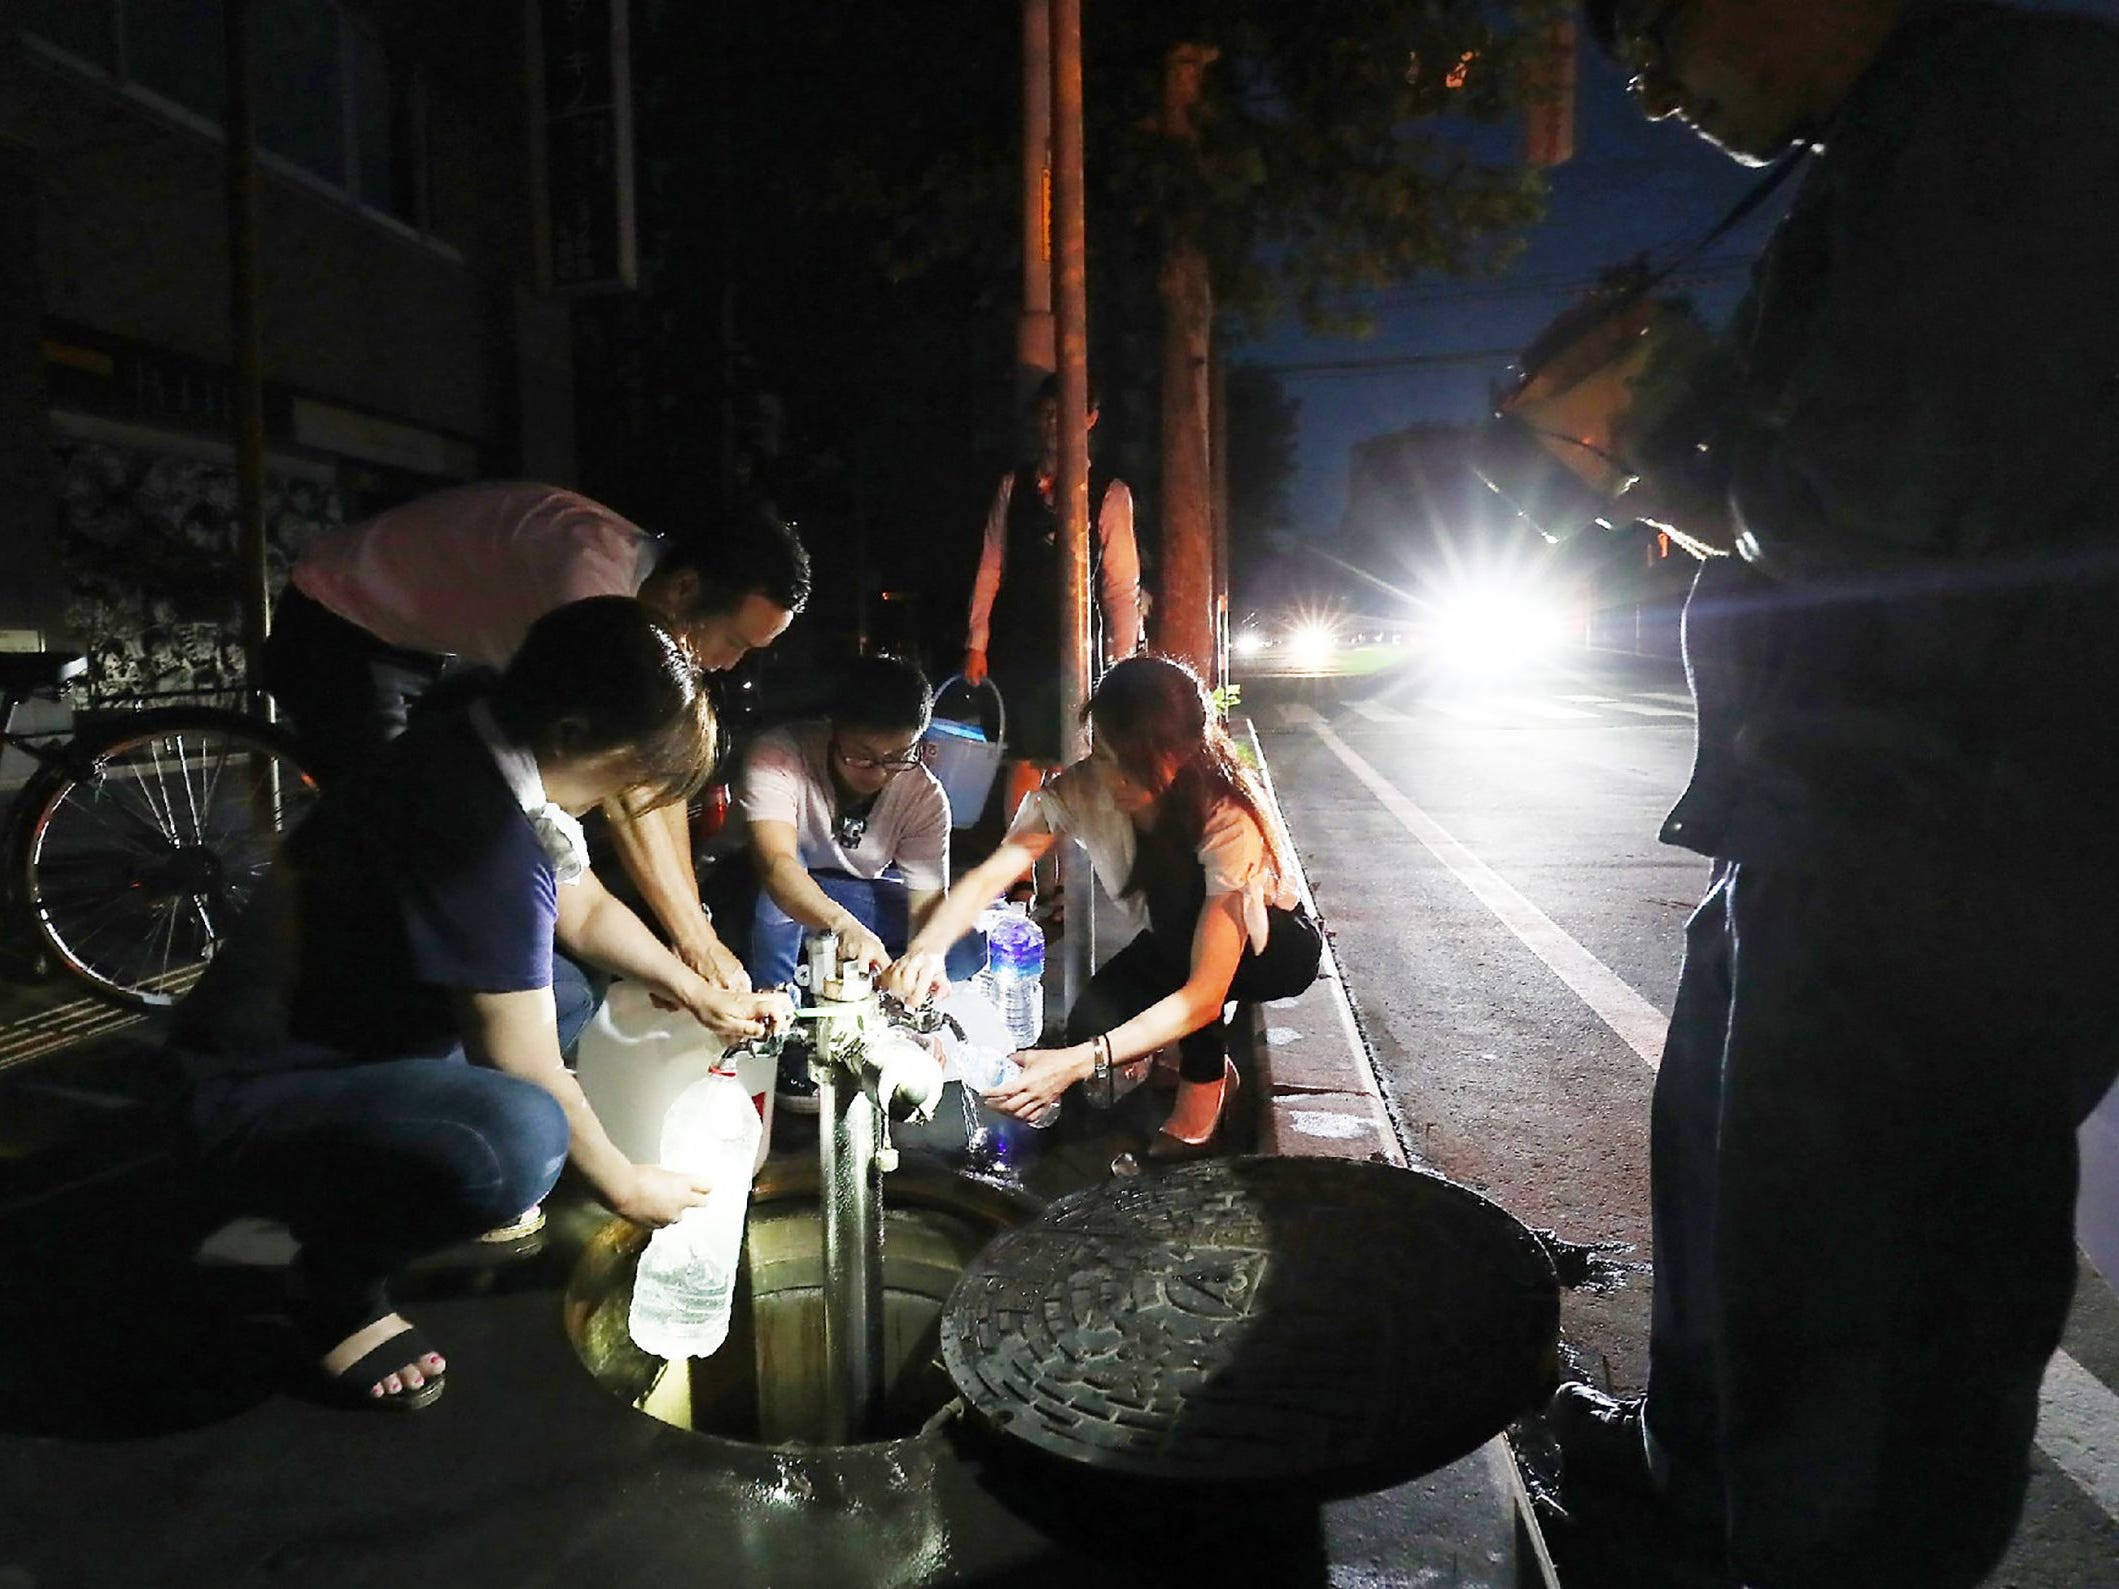 Earthquake-affected residents fill water bottles as an electrical blackout shrouds the shopping district in Sapporo, Japan on Sept. 6, 2018.